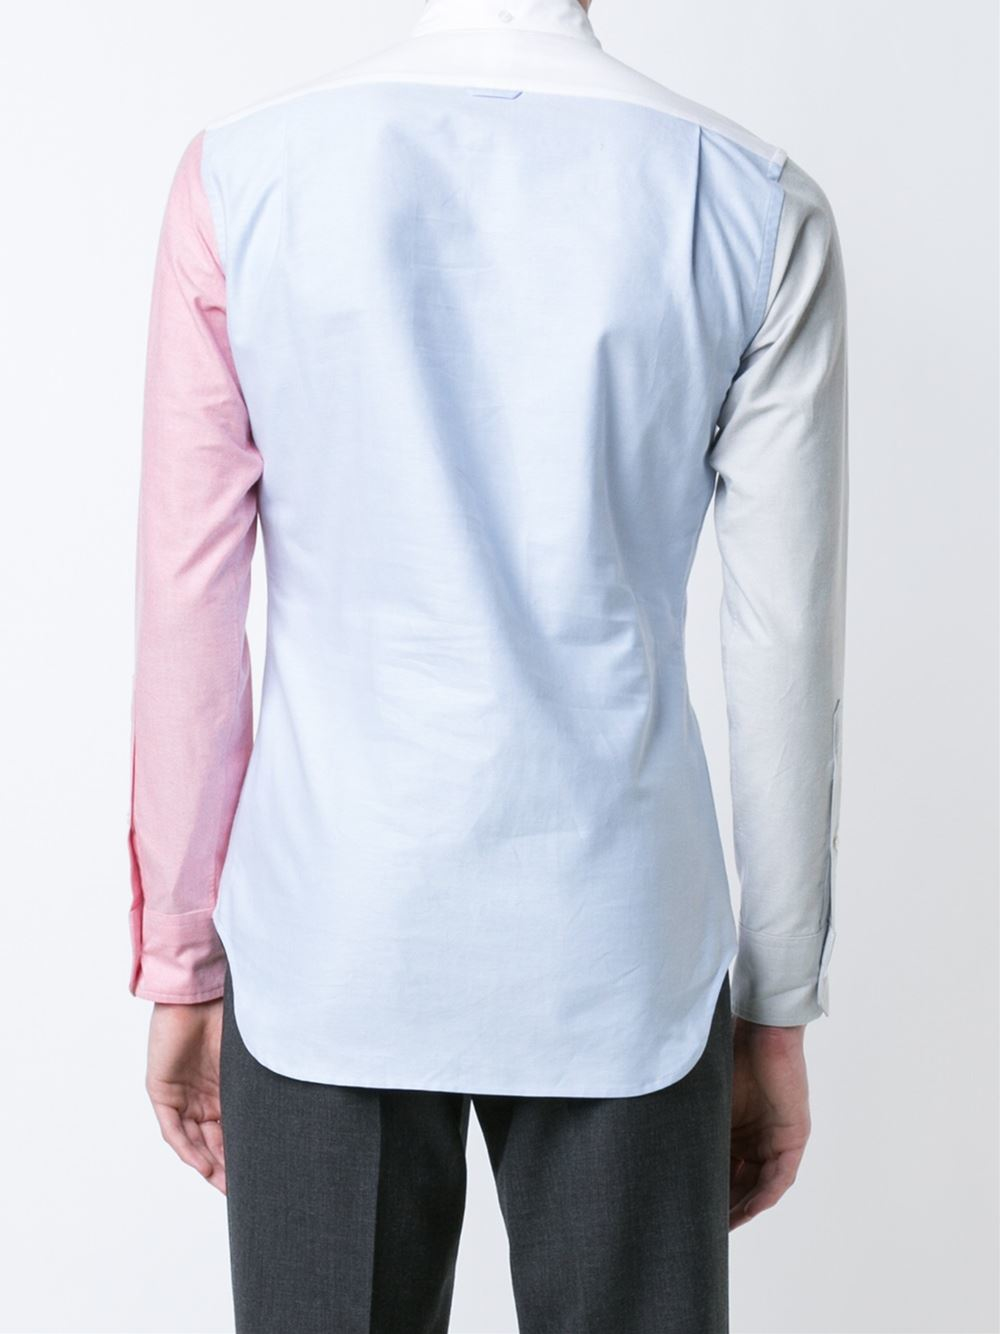 Thom browne seagull embroidery shirt in blue for men lyst for Thom browne shirt sale